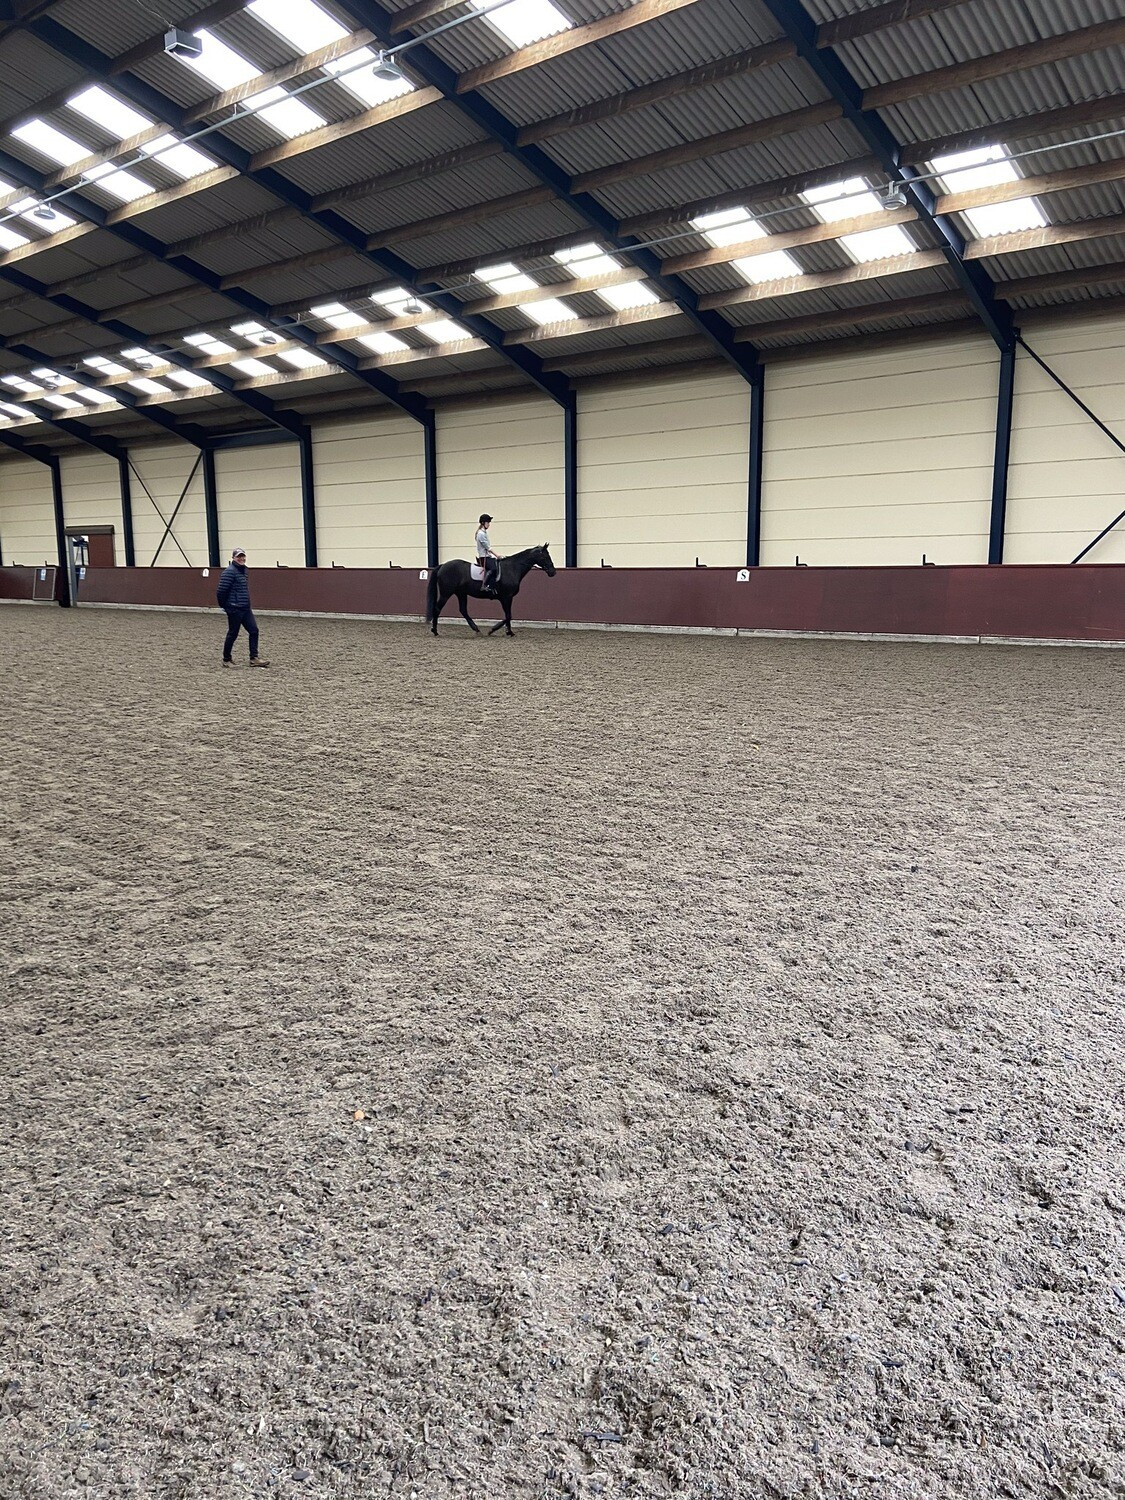 Testt: Mounted Review : 30 Minutes (Client Must Have Had A Previous Assessment With Andy) October 29th Hosted By Kerri Thompson, Newbury Stud - Must Be On Host's List Before Use